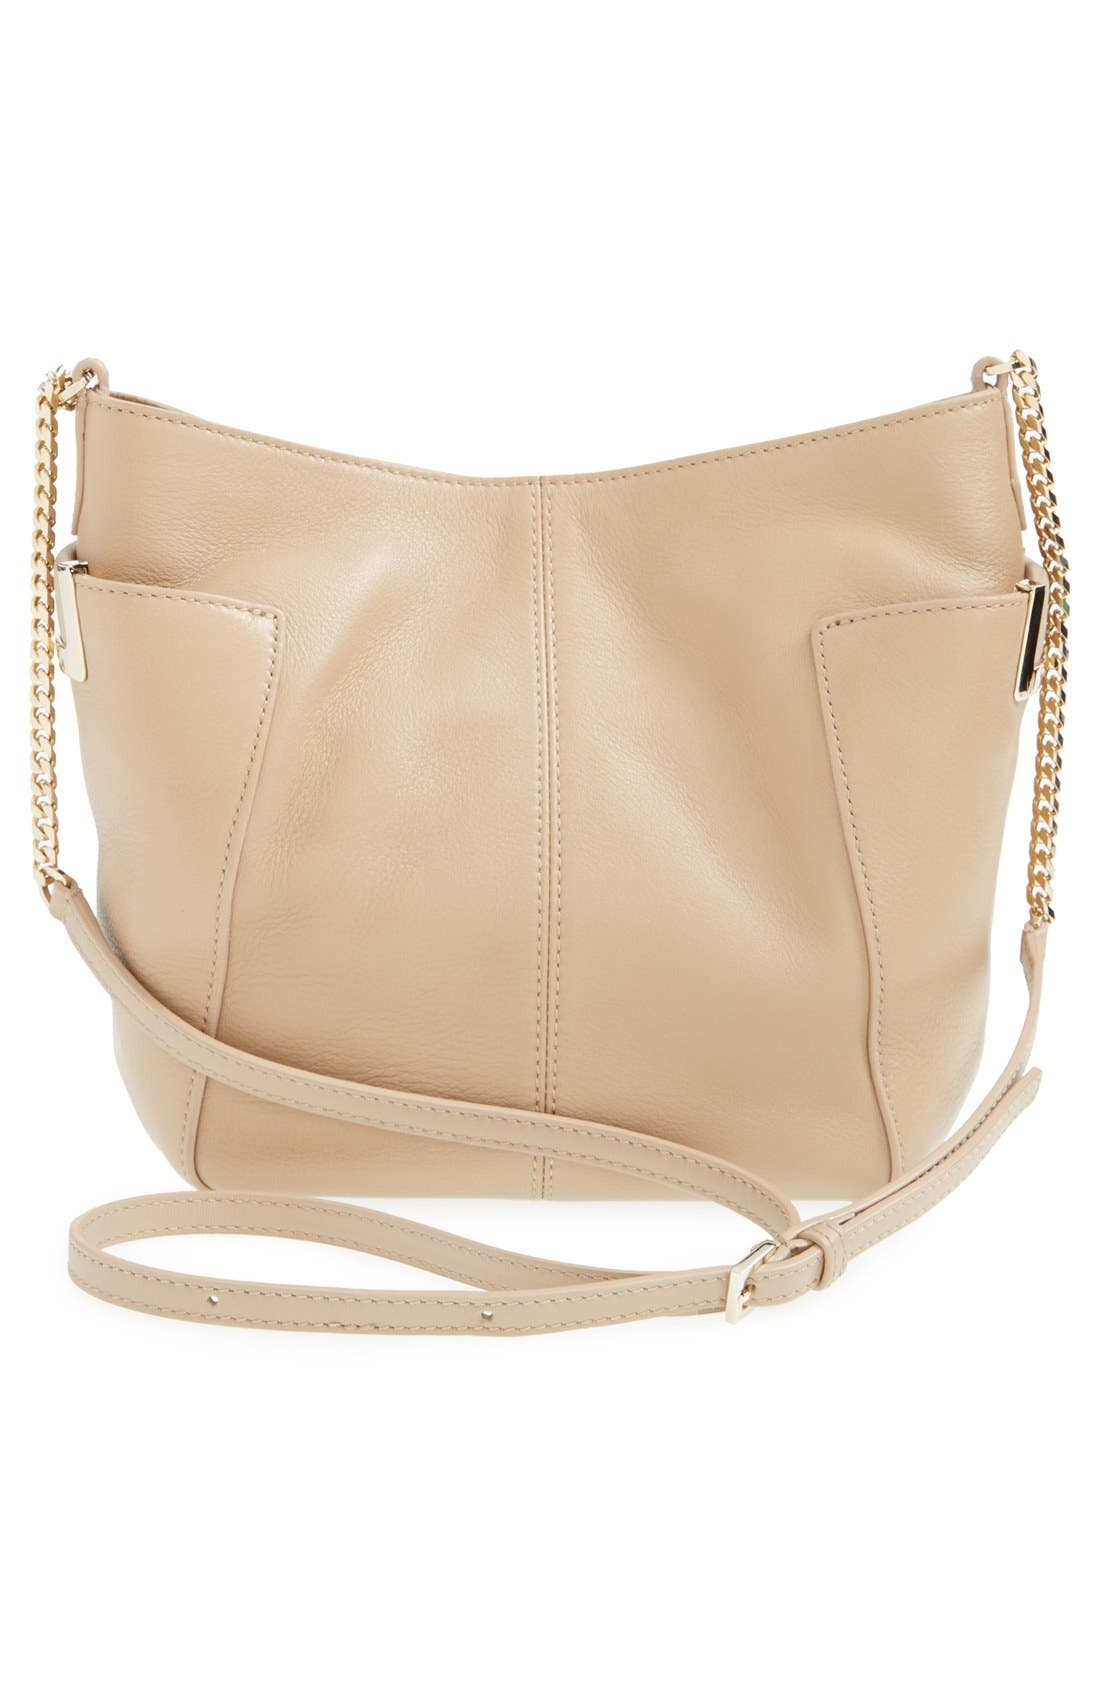 Alternate Image 3  - Jimmy Choo 'Small Anabel' Leather Crossbody Bag